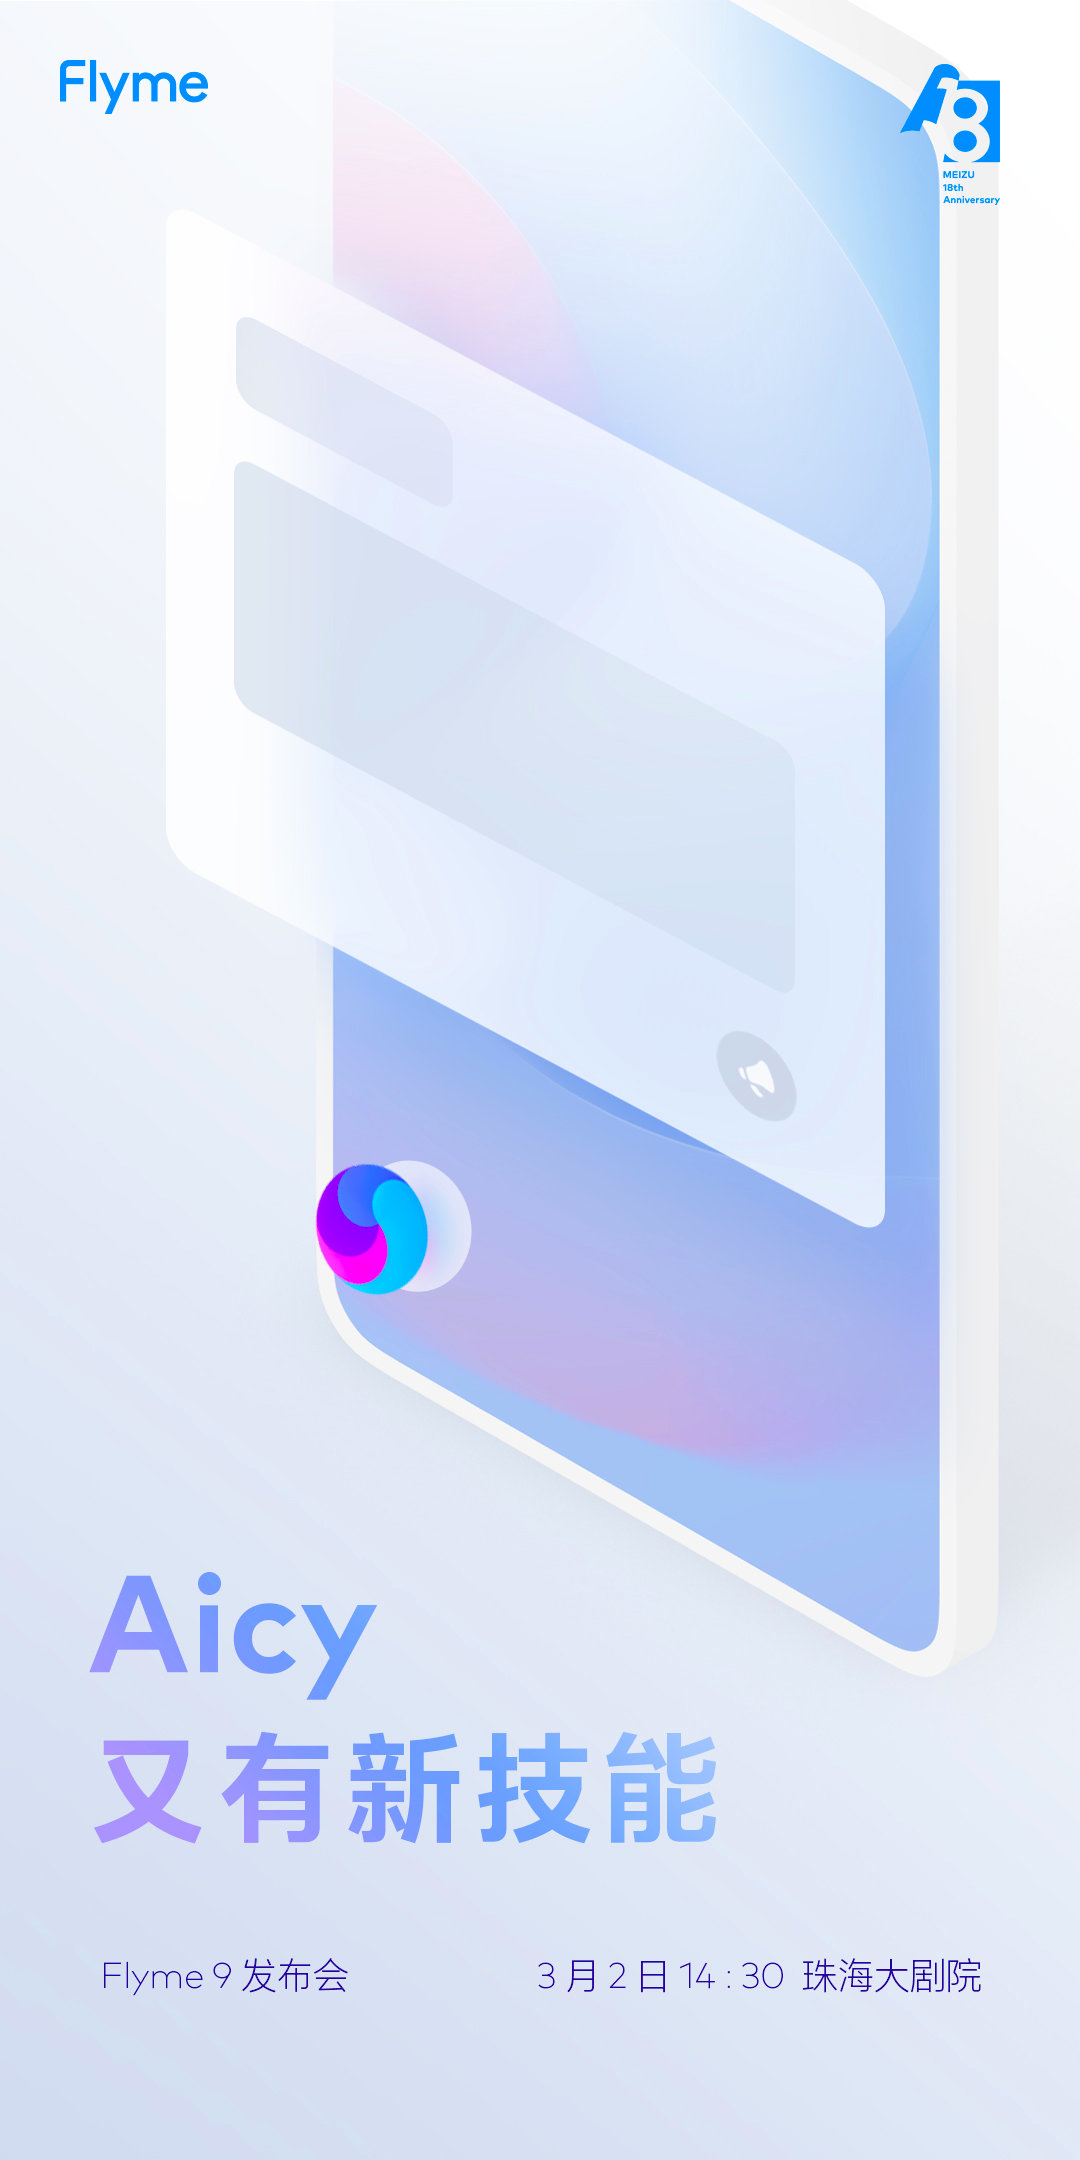 Flyme 9 Aicy